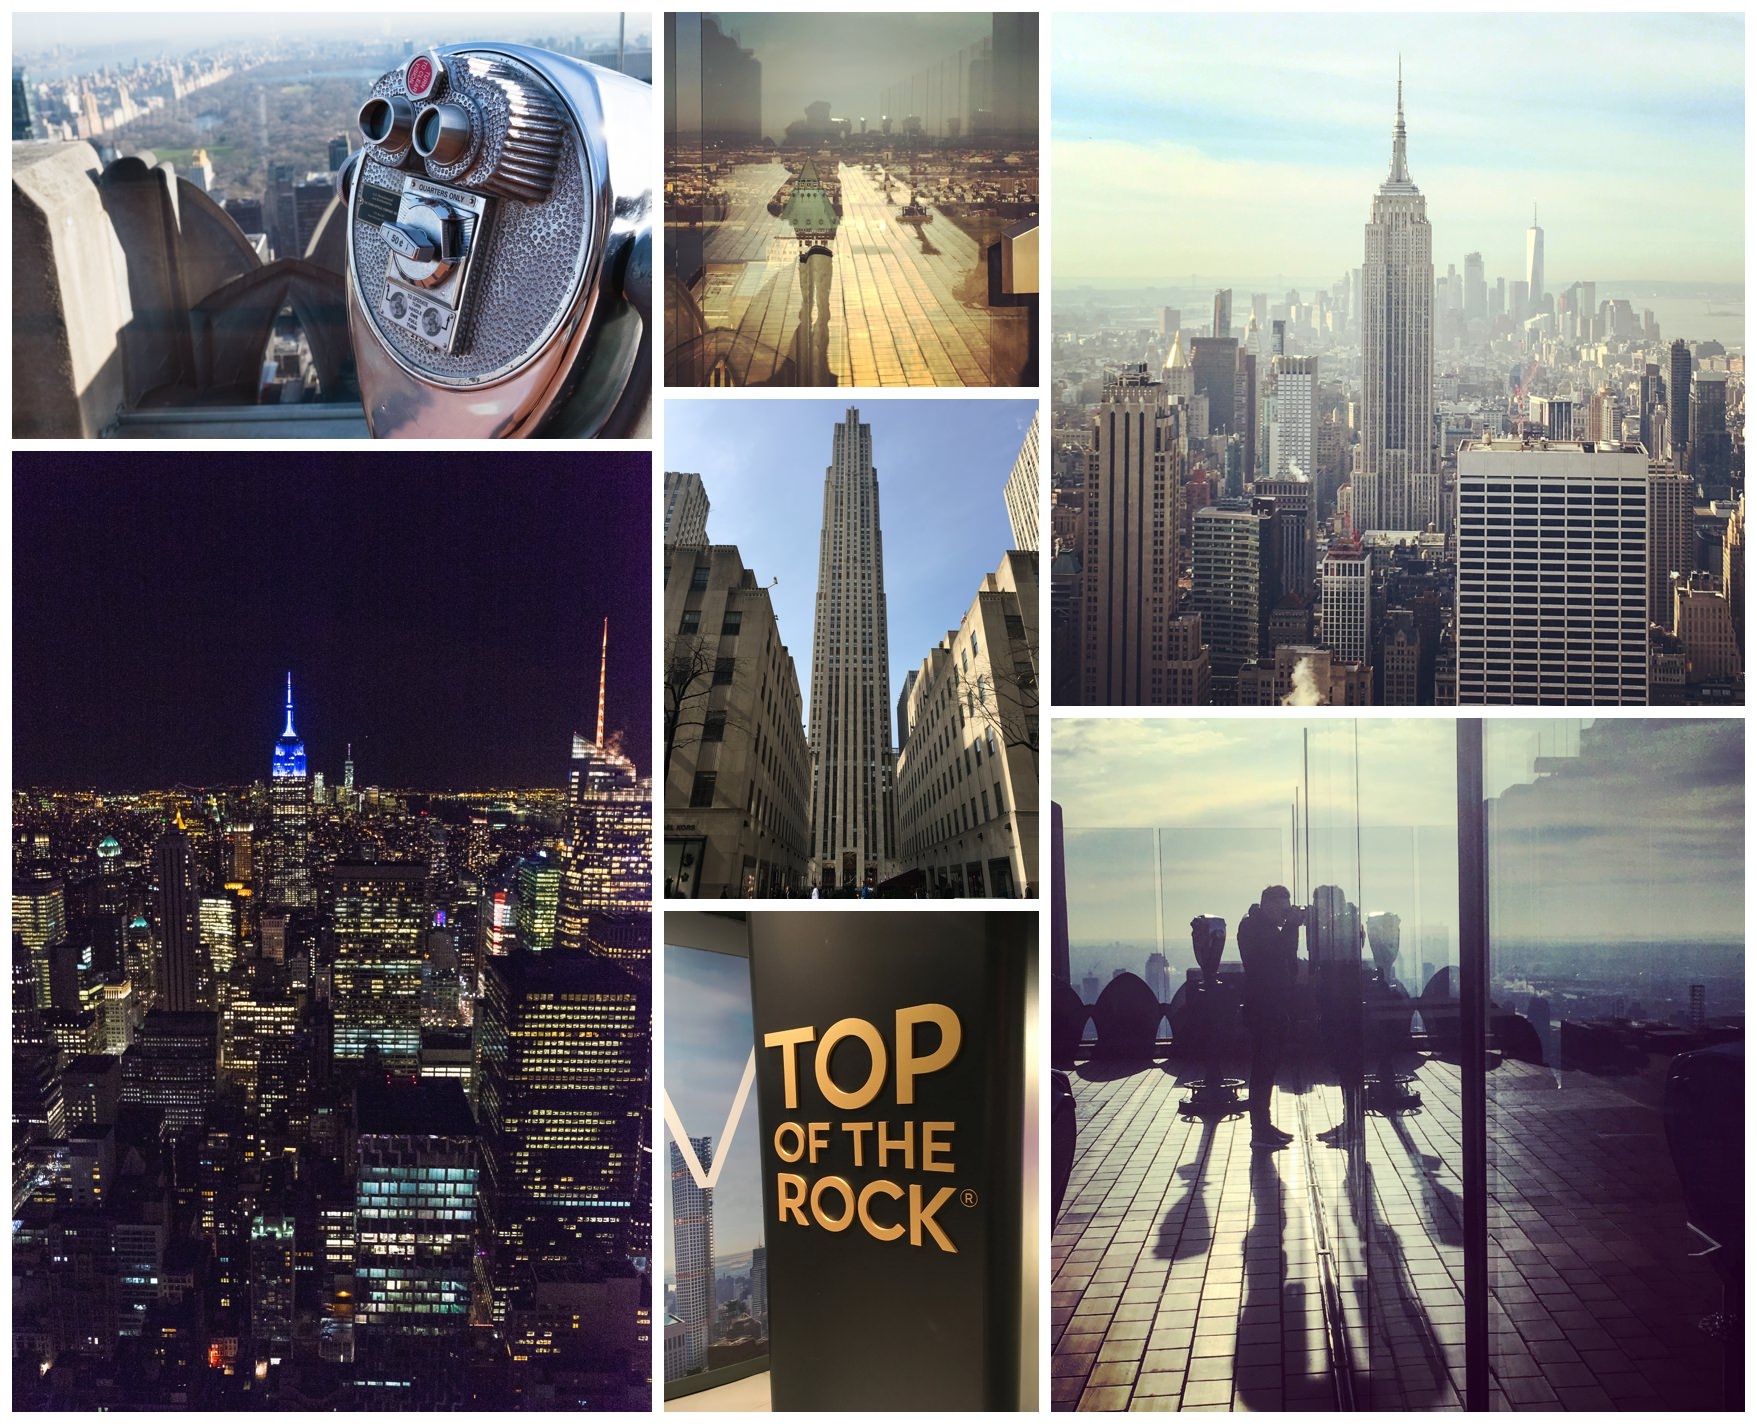 Views from the Rockefeller building overlooking new york city at day and night